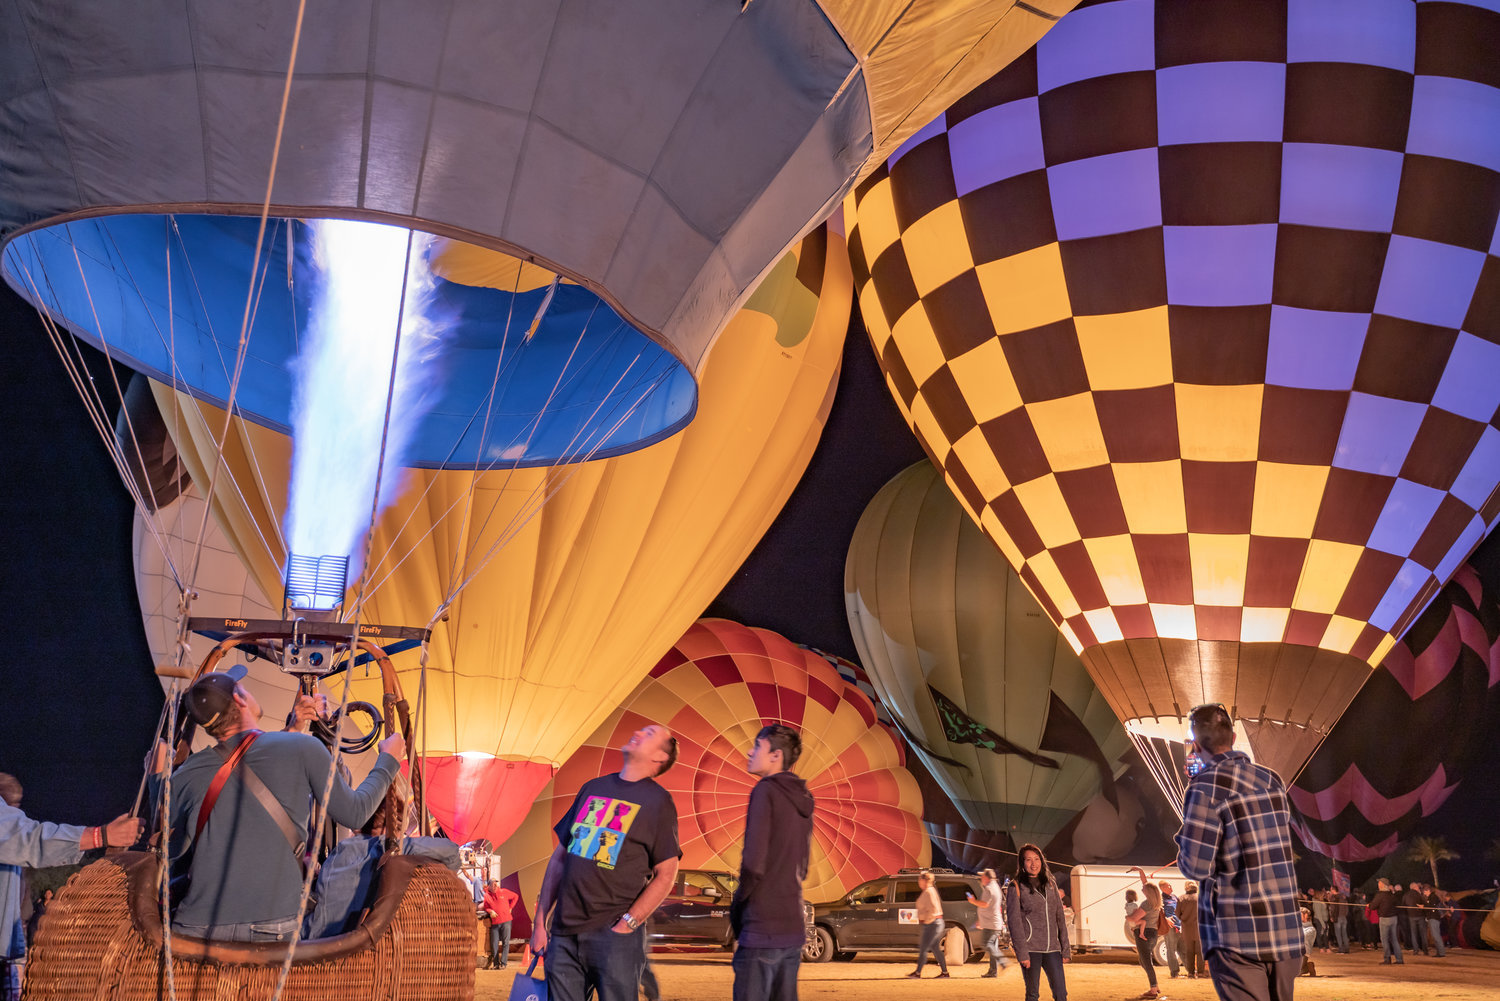 Arizona Balloon Classic attendees can view illuminated hot air balloons as they glow in time to music during Desert Glows.